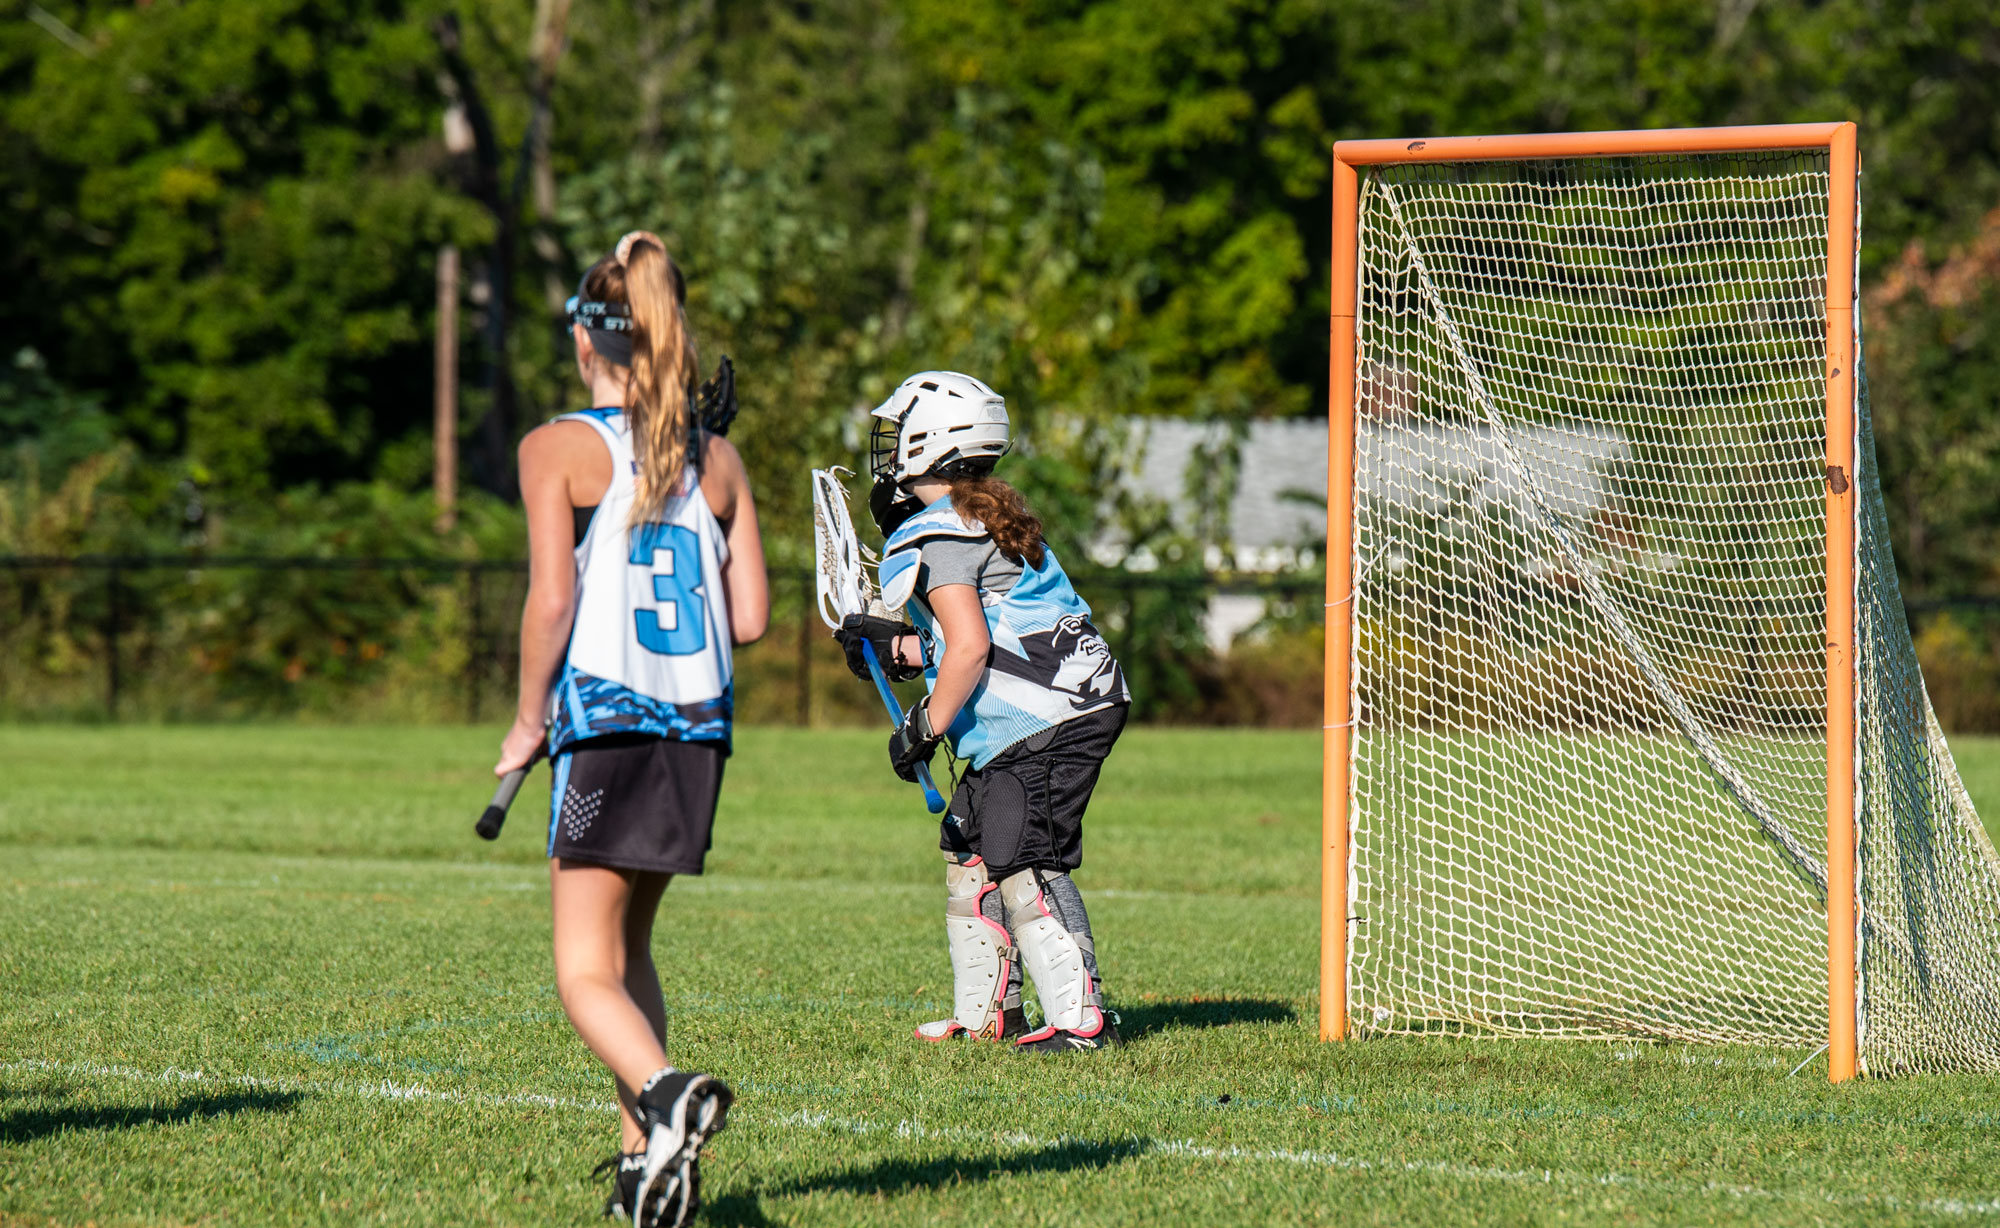 Grace the Goalie, at the ready